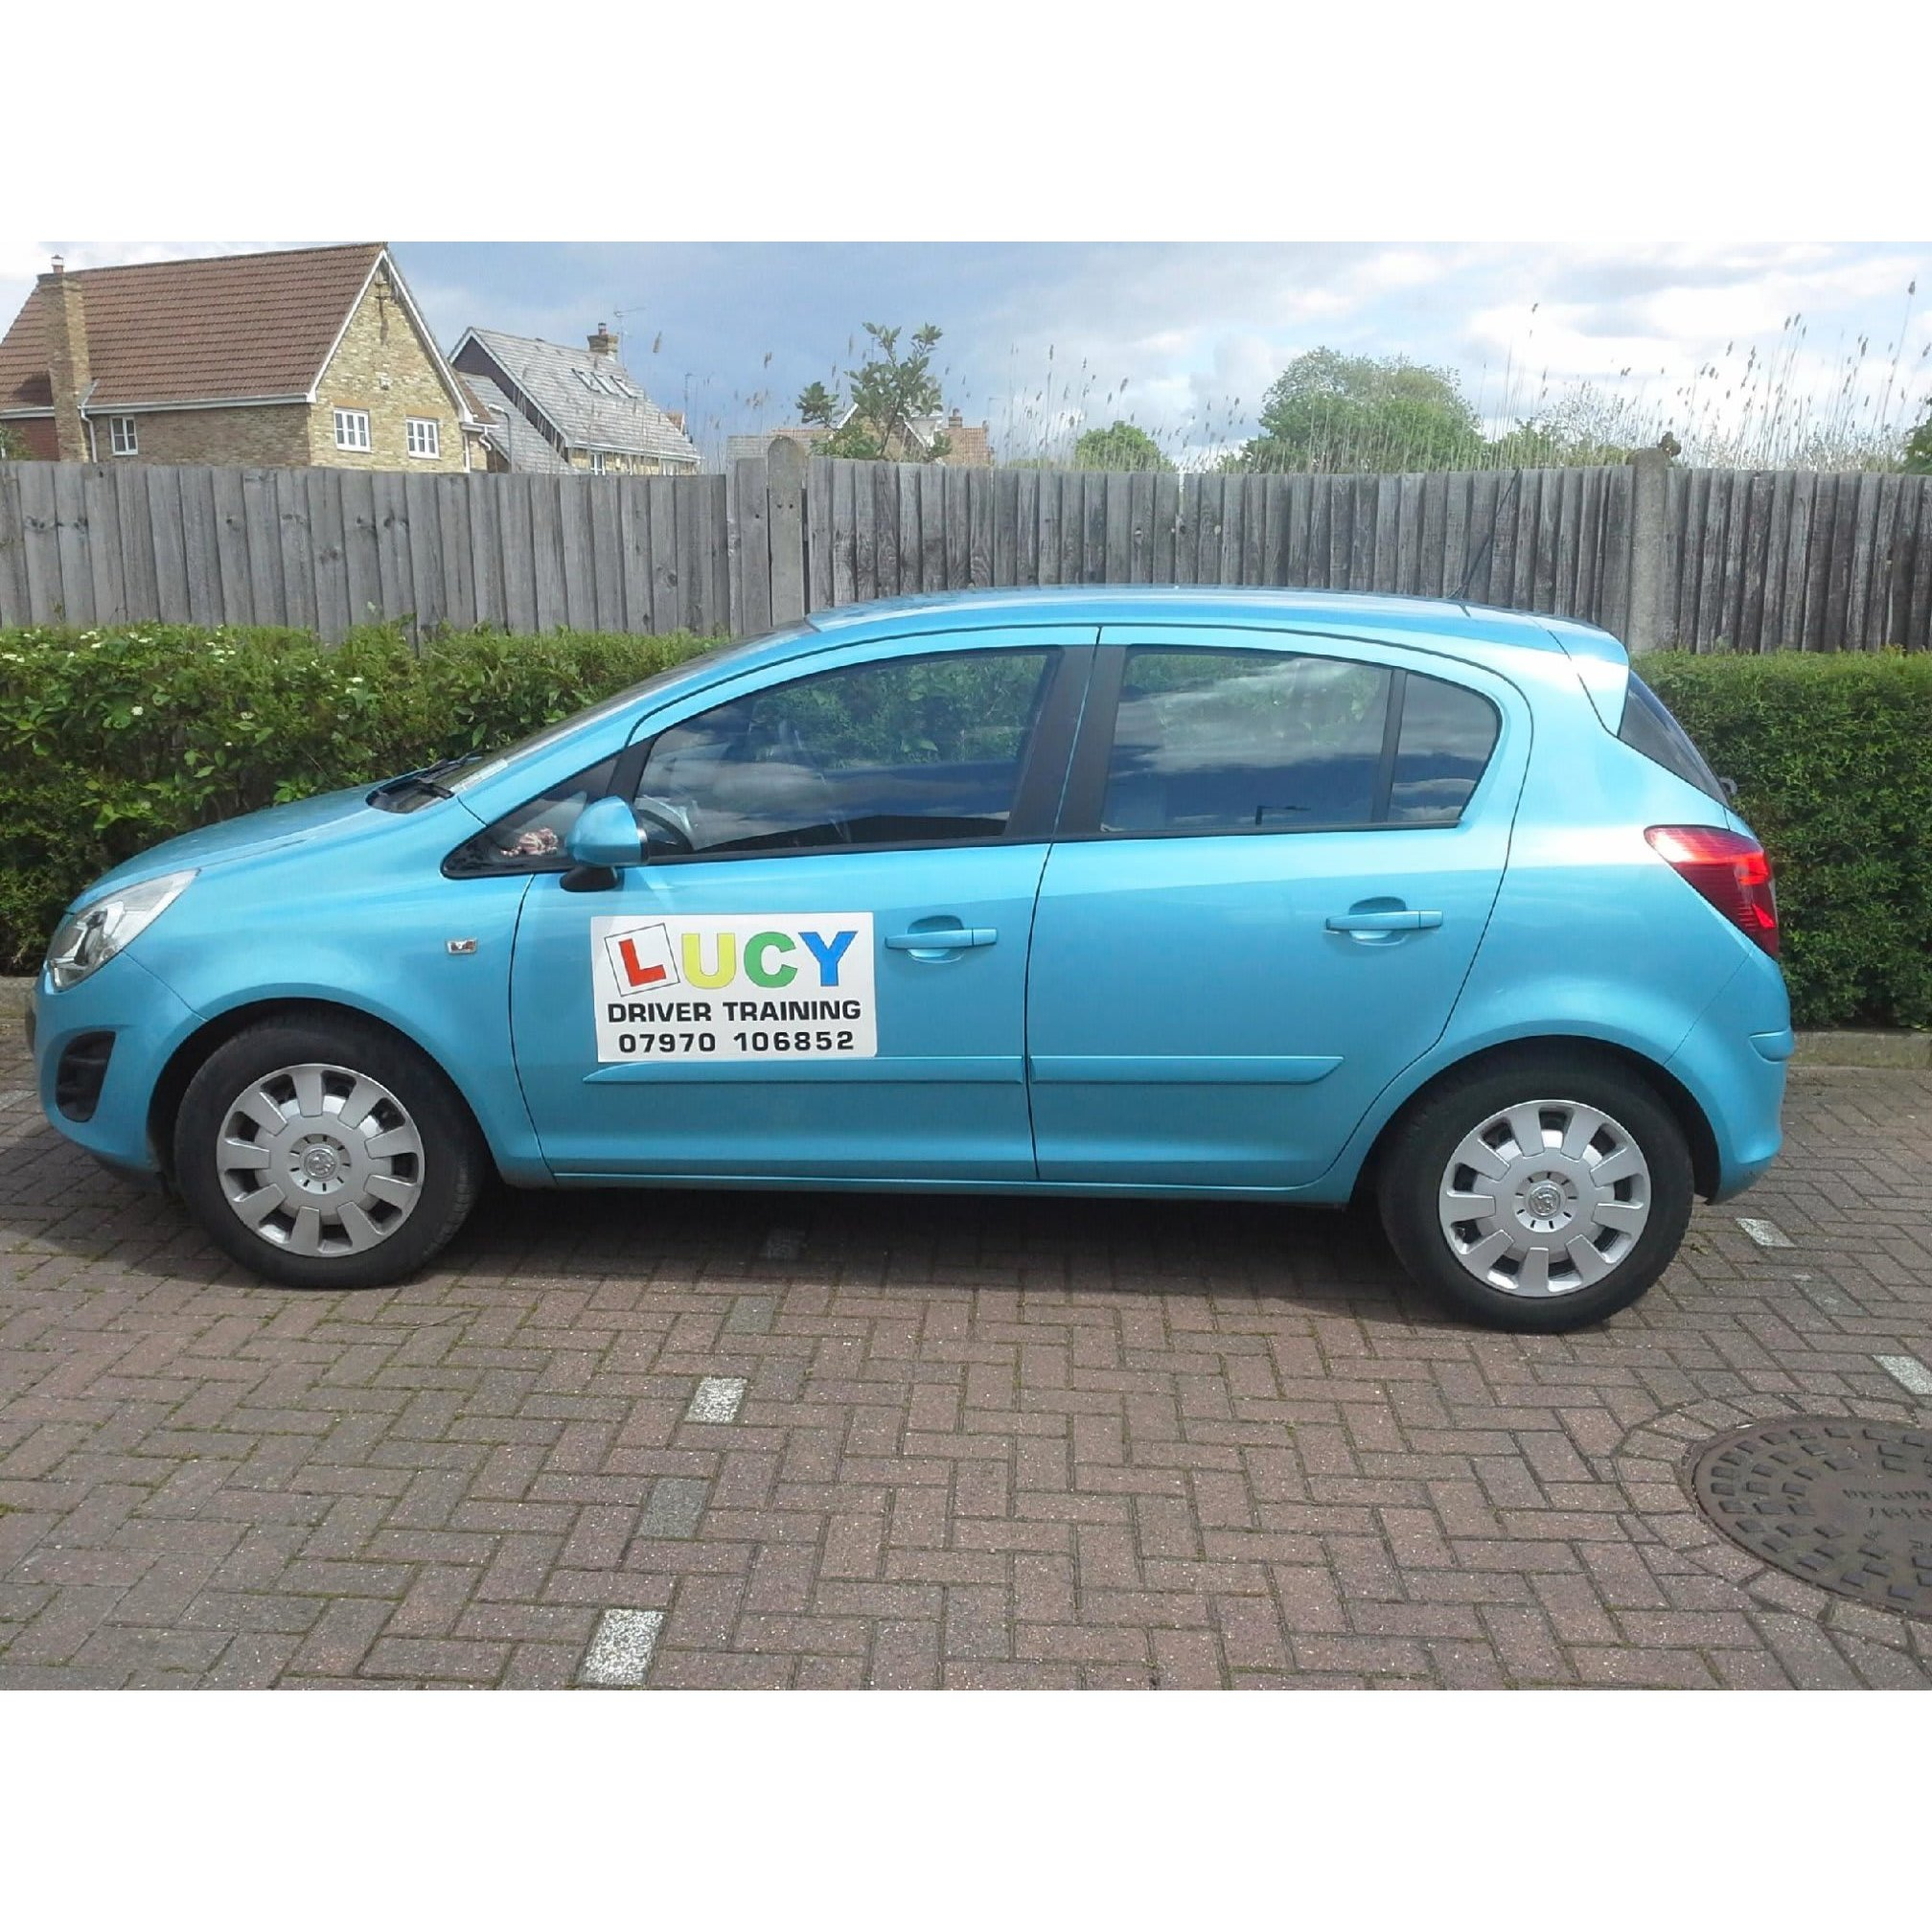 Lucy Driver Training - St. Albans, Hertfordshire  - 07970 106852 | ShowMeLocal.com